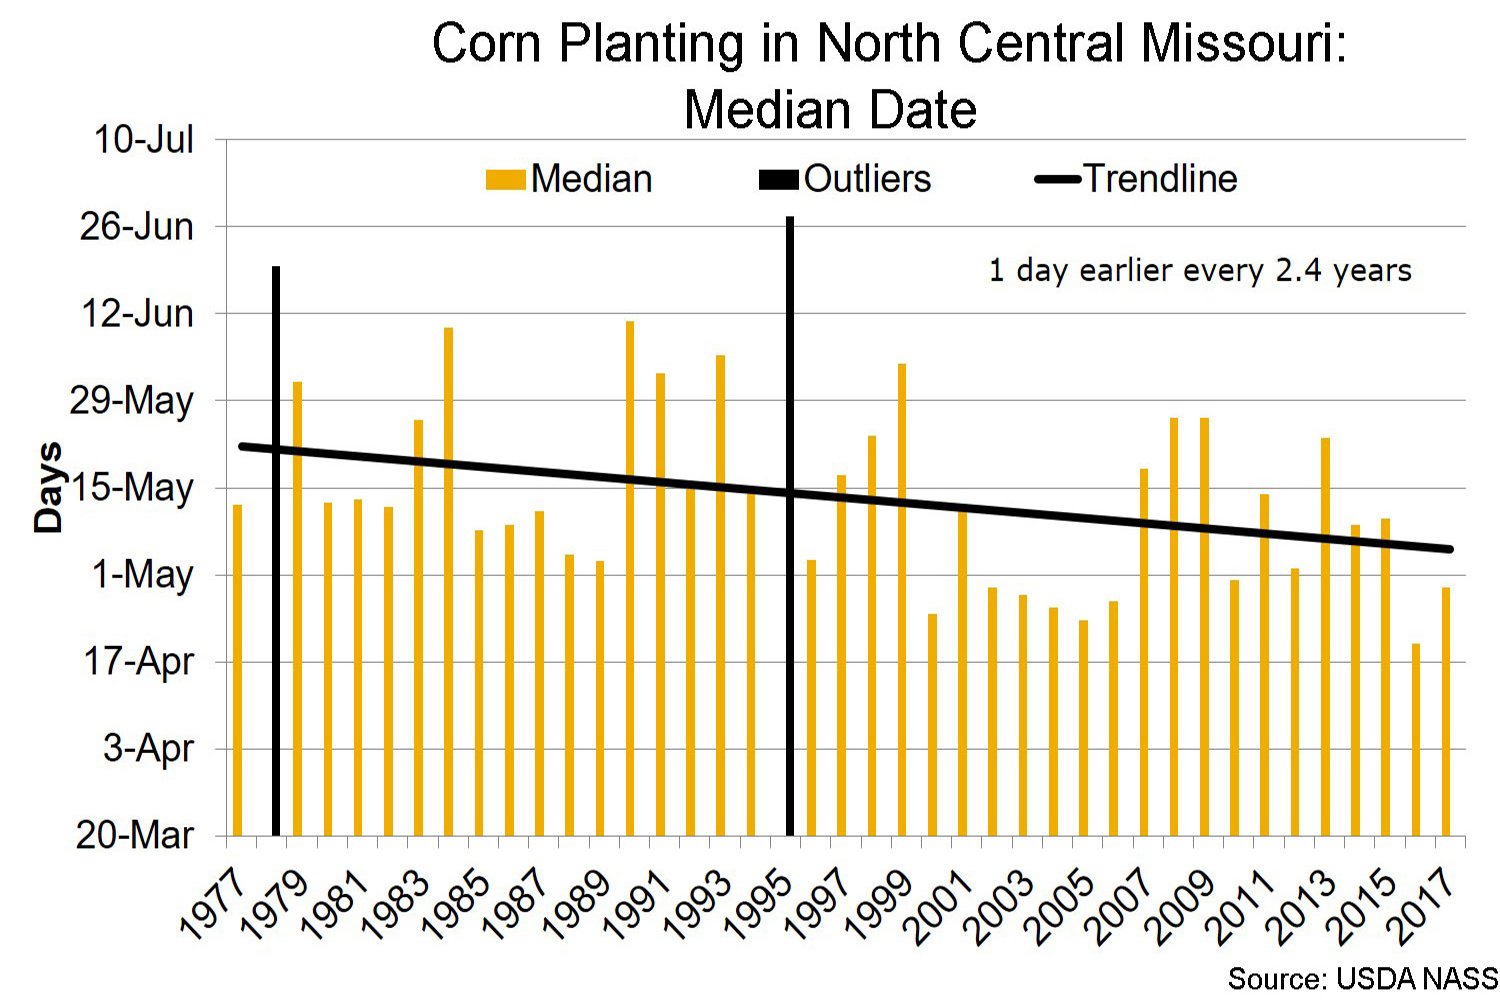 Corn planting in north central Missouri median date chart